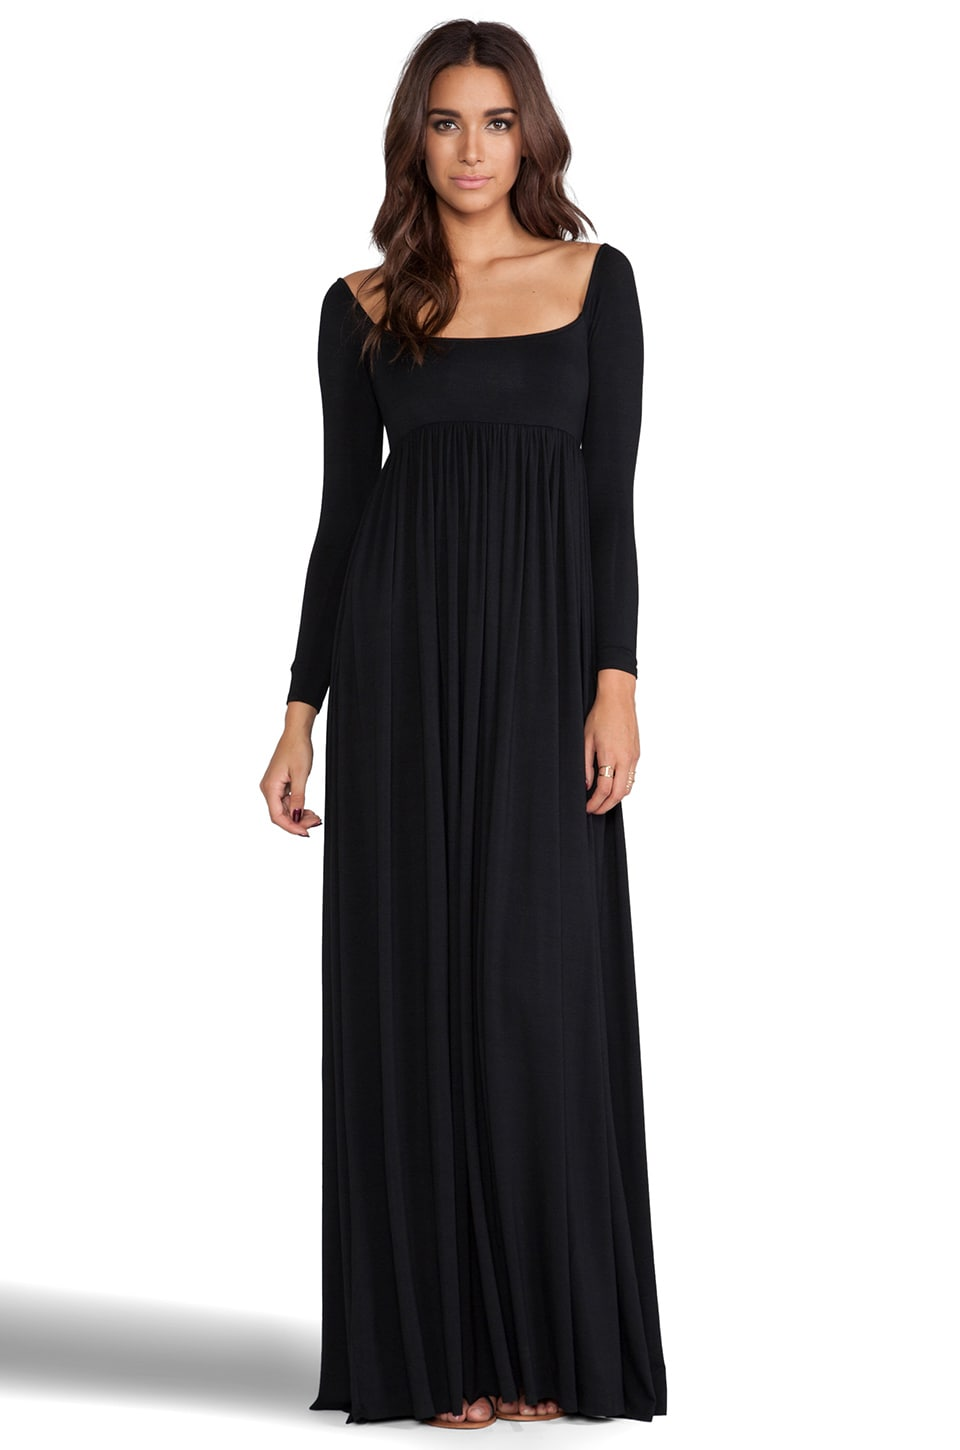 Rachel Pally Isa Dress in Black